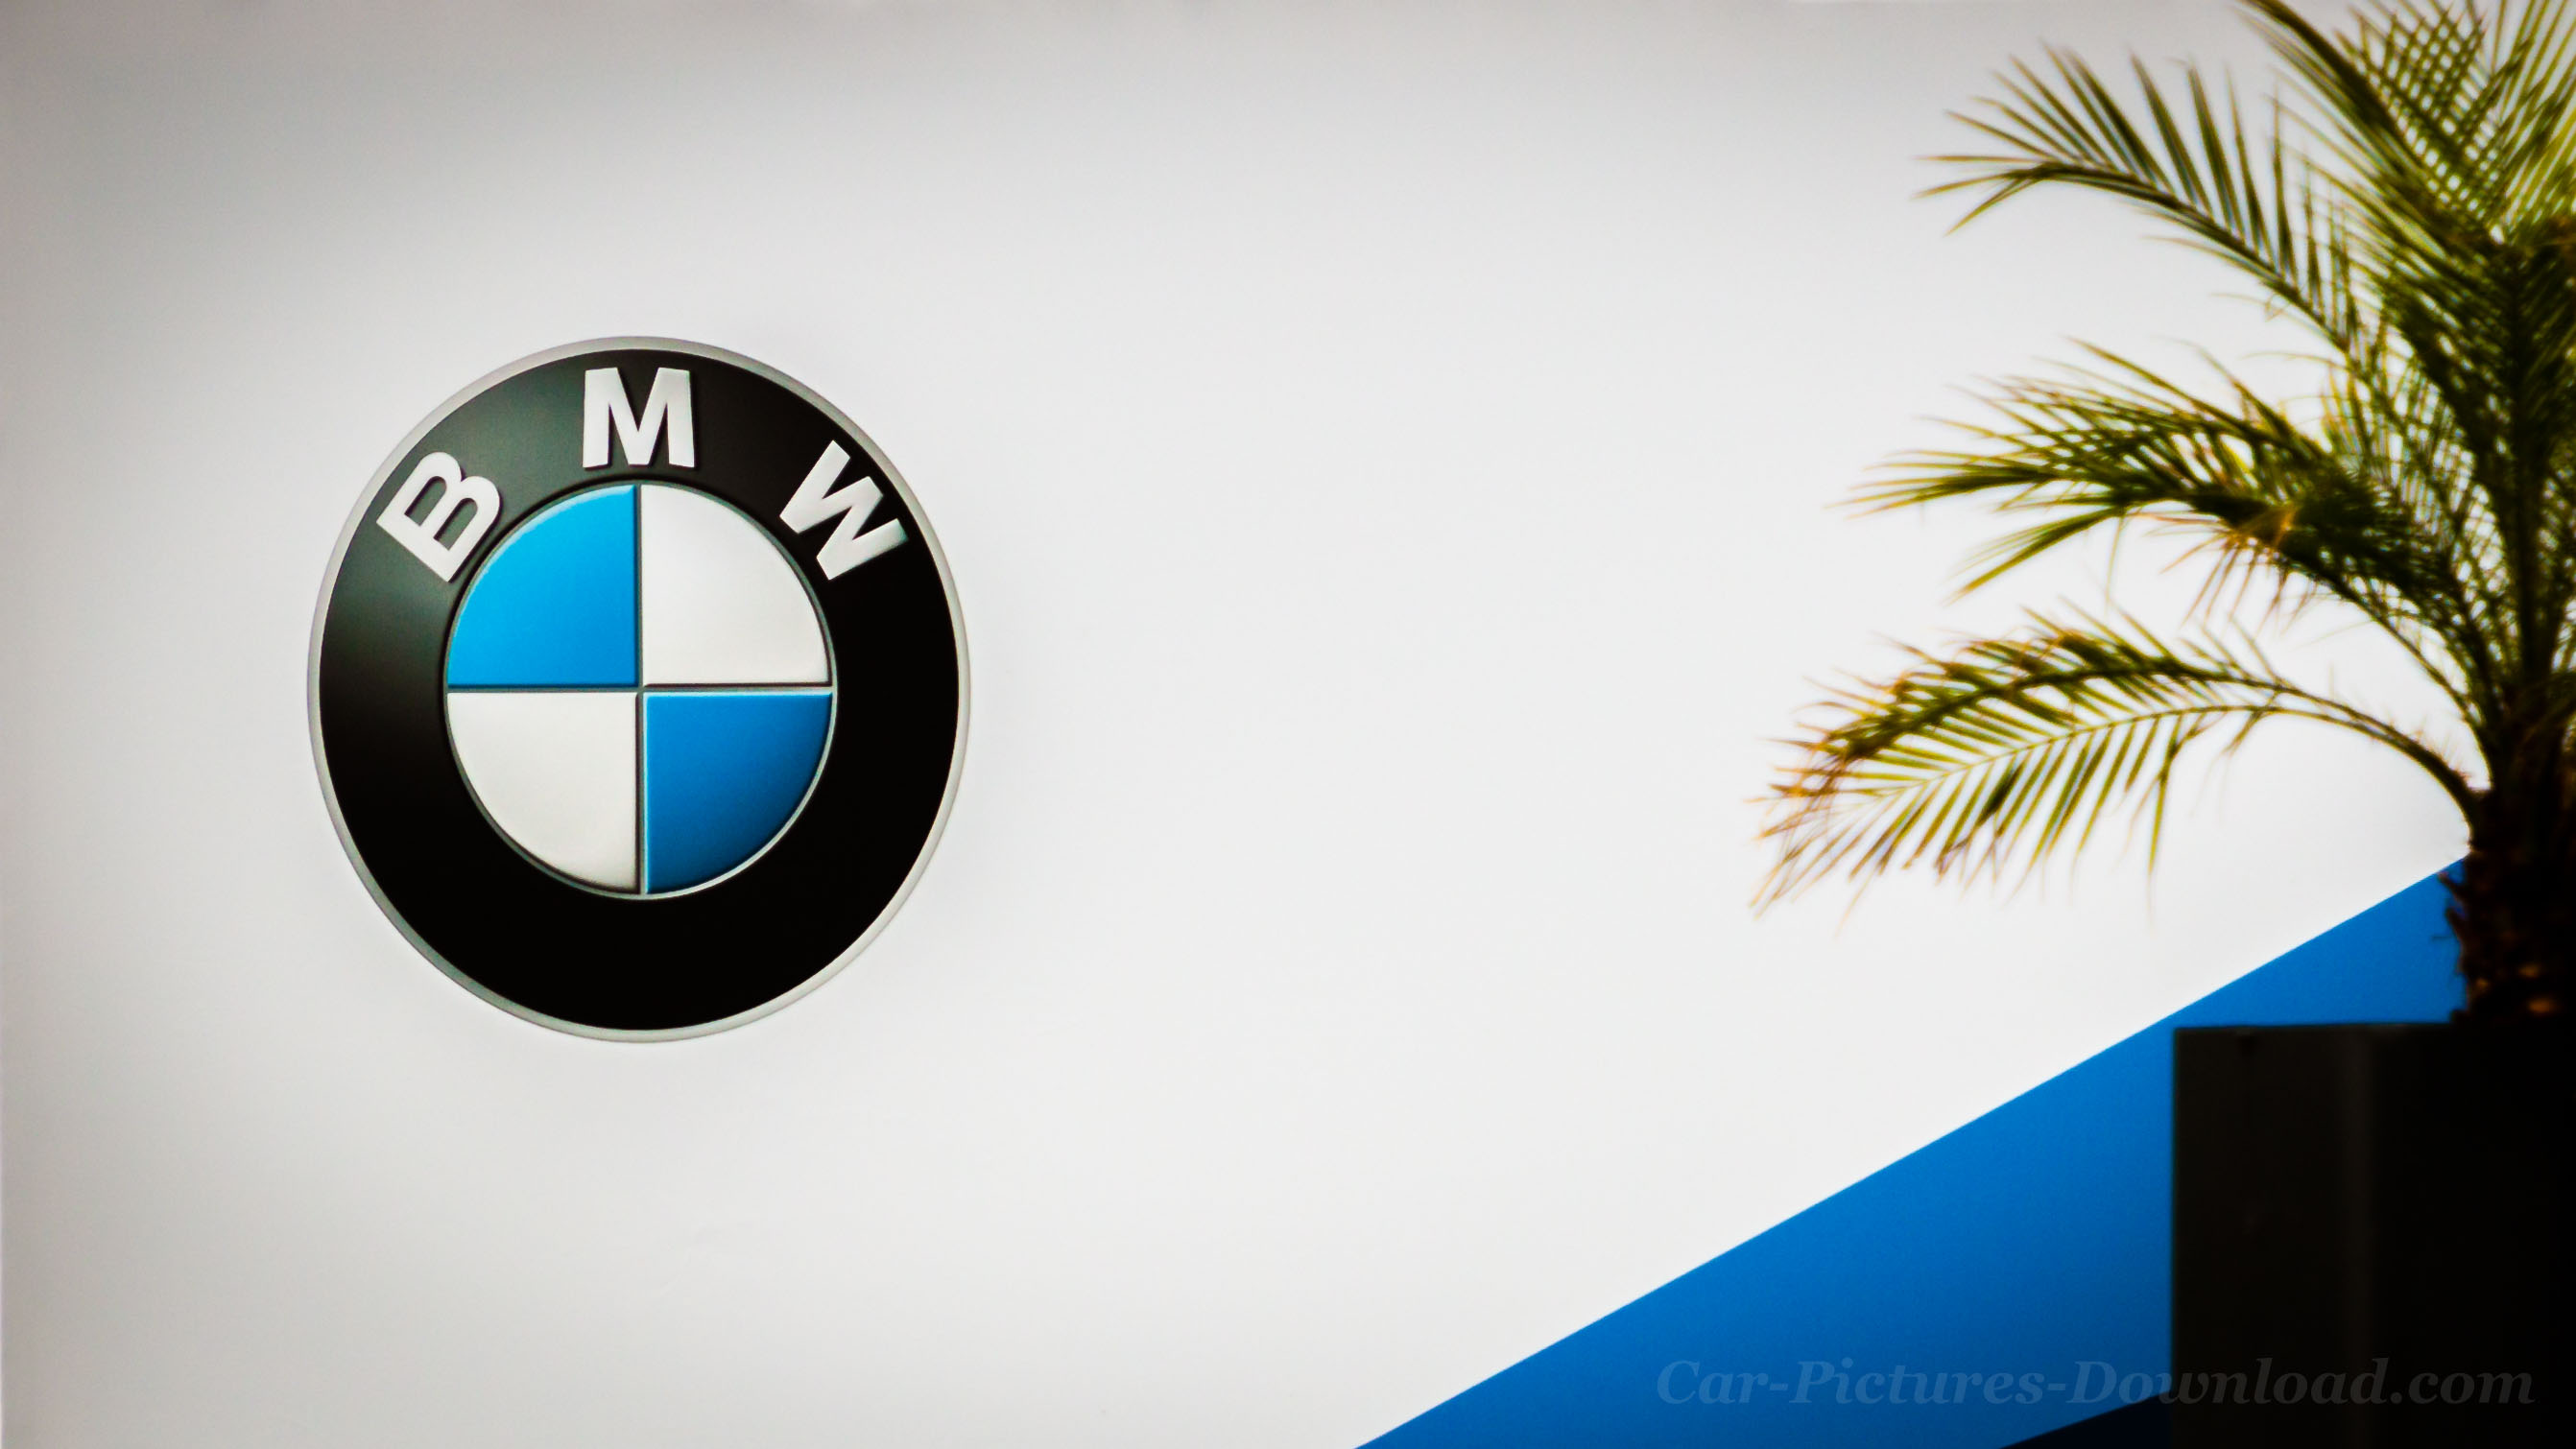 Bmw Wallpaper Pictures 4k Hd For All Devices Download Free